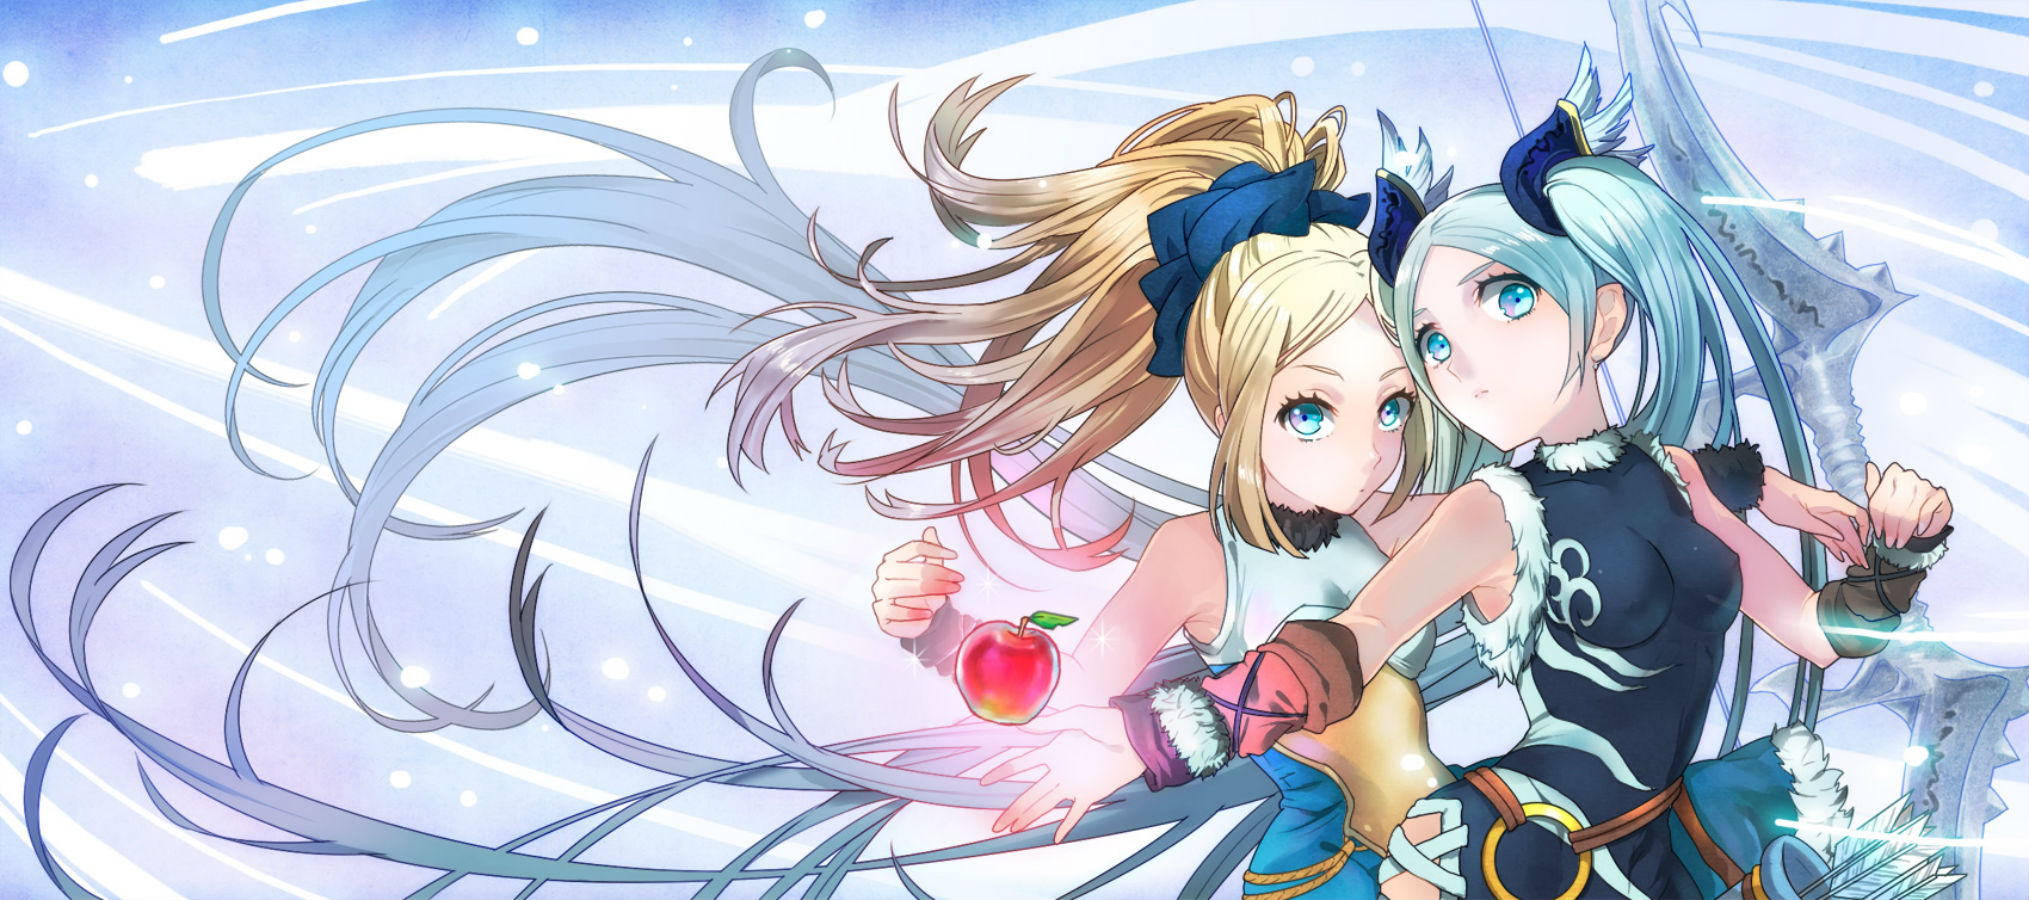 Anime girl blue eyes with blonde ponytails dating sim